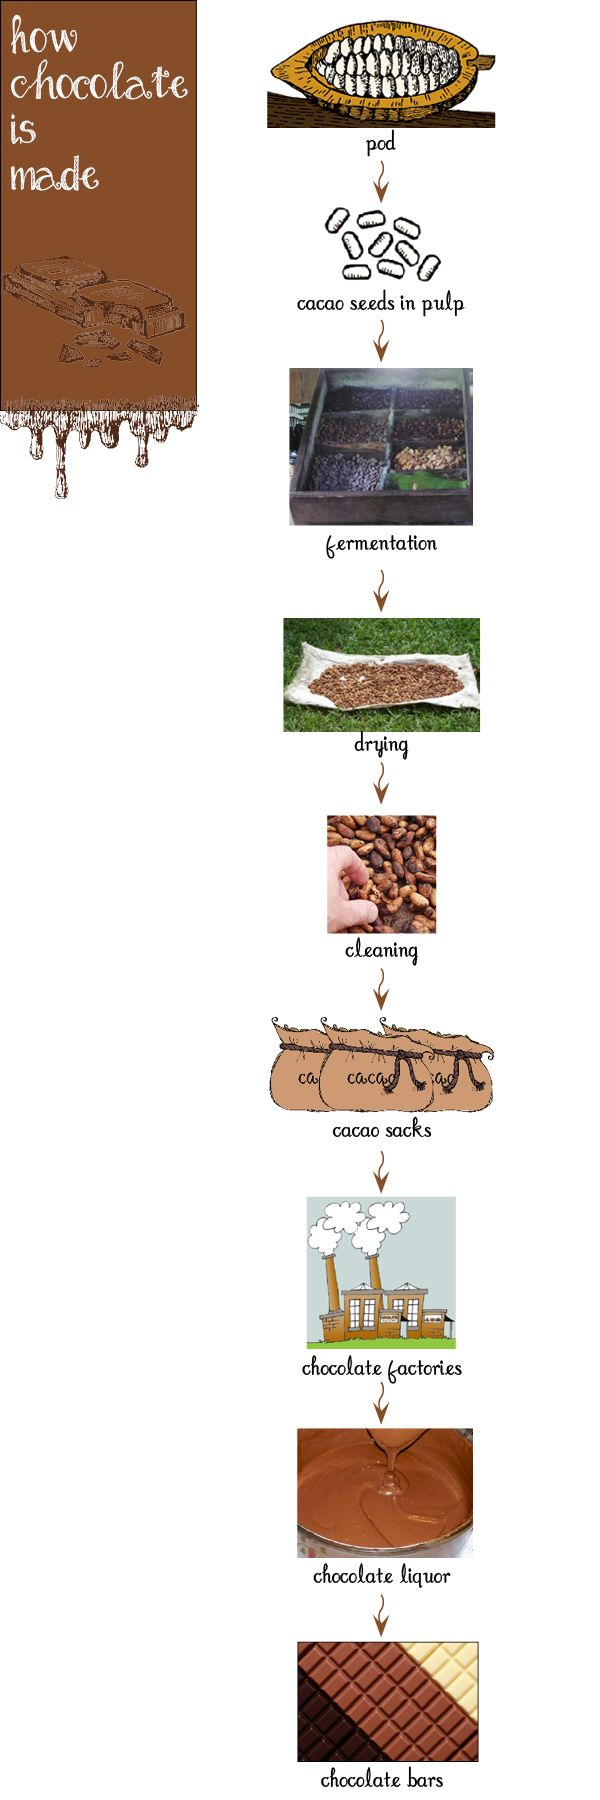 How chocolate is made craftivity - From my Chocolate Unit for Pre-K and Kindergarten!